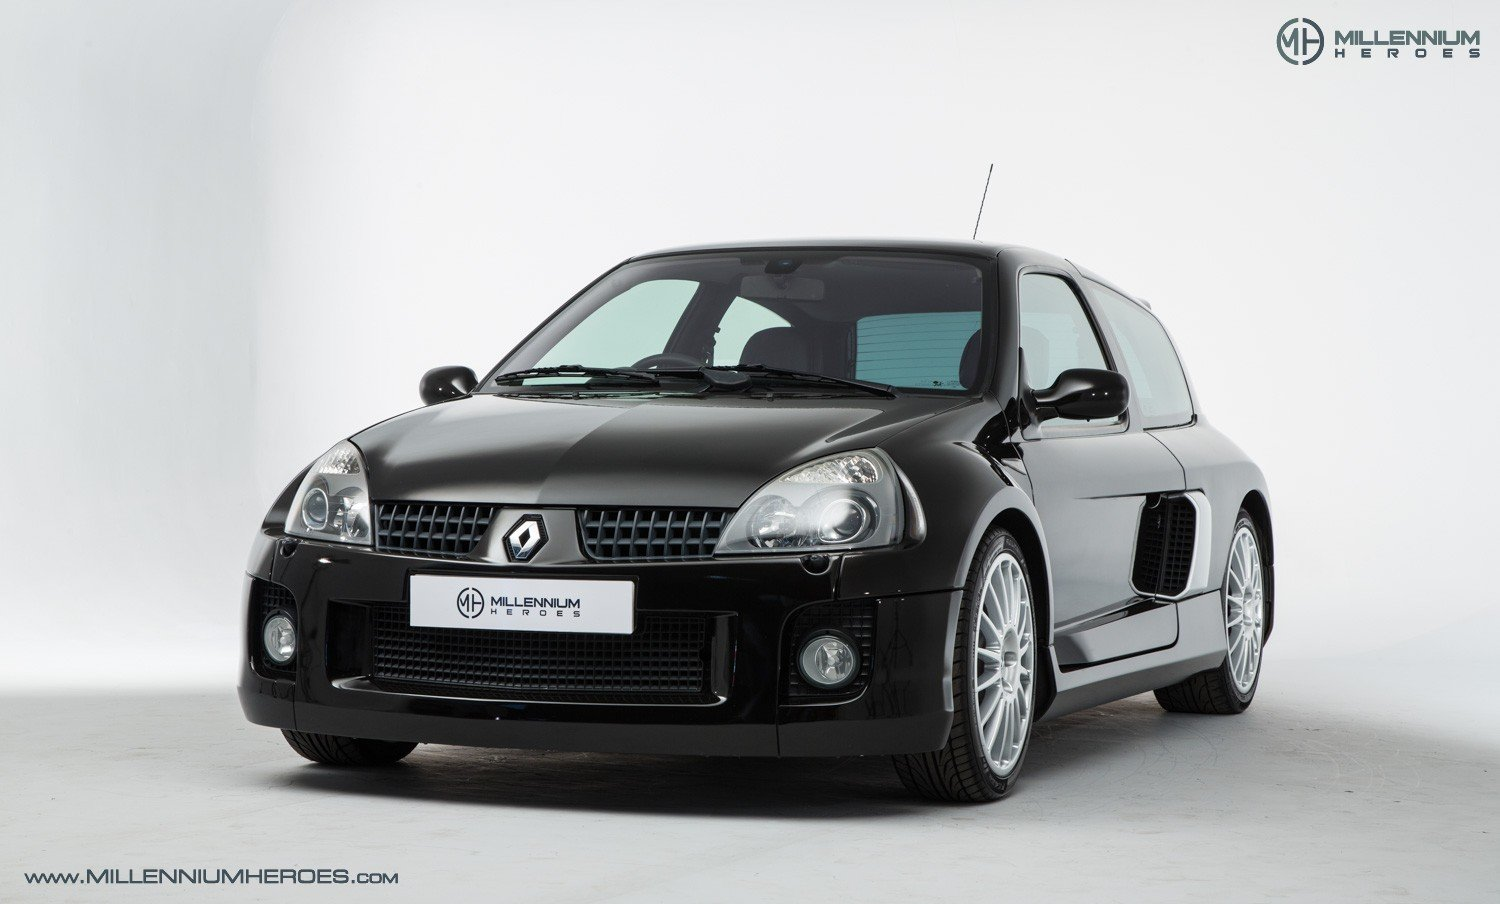 2008 RENAULT MEGANE RENAULTSPORT R26.R For Sale (picture 6 of 7)